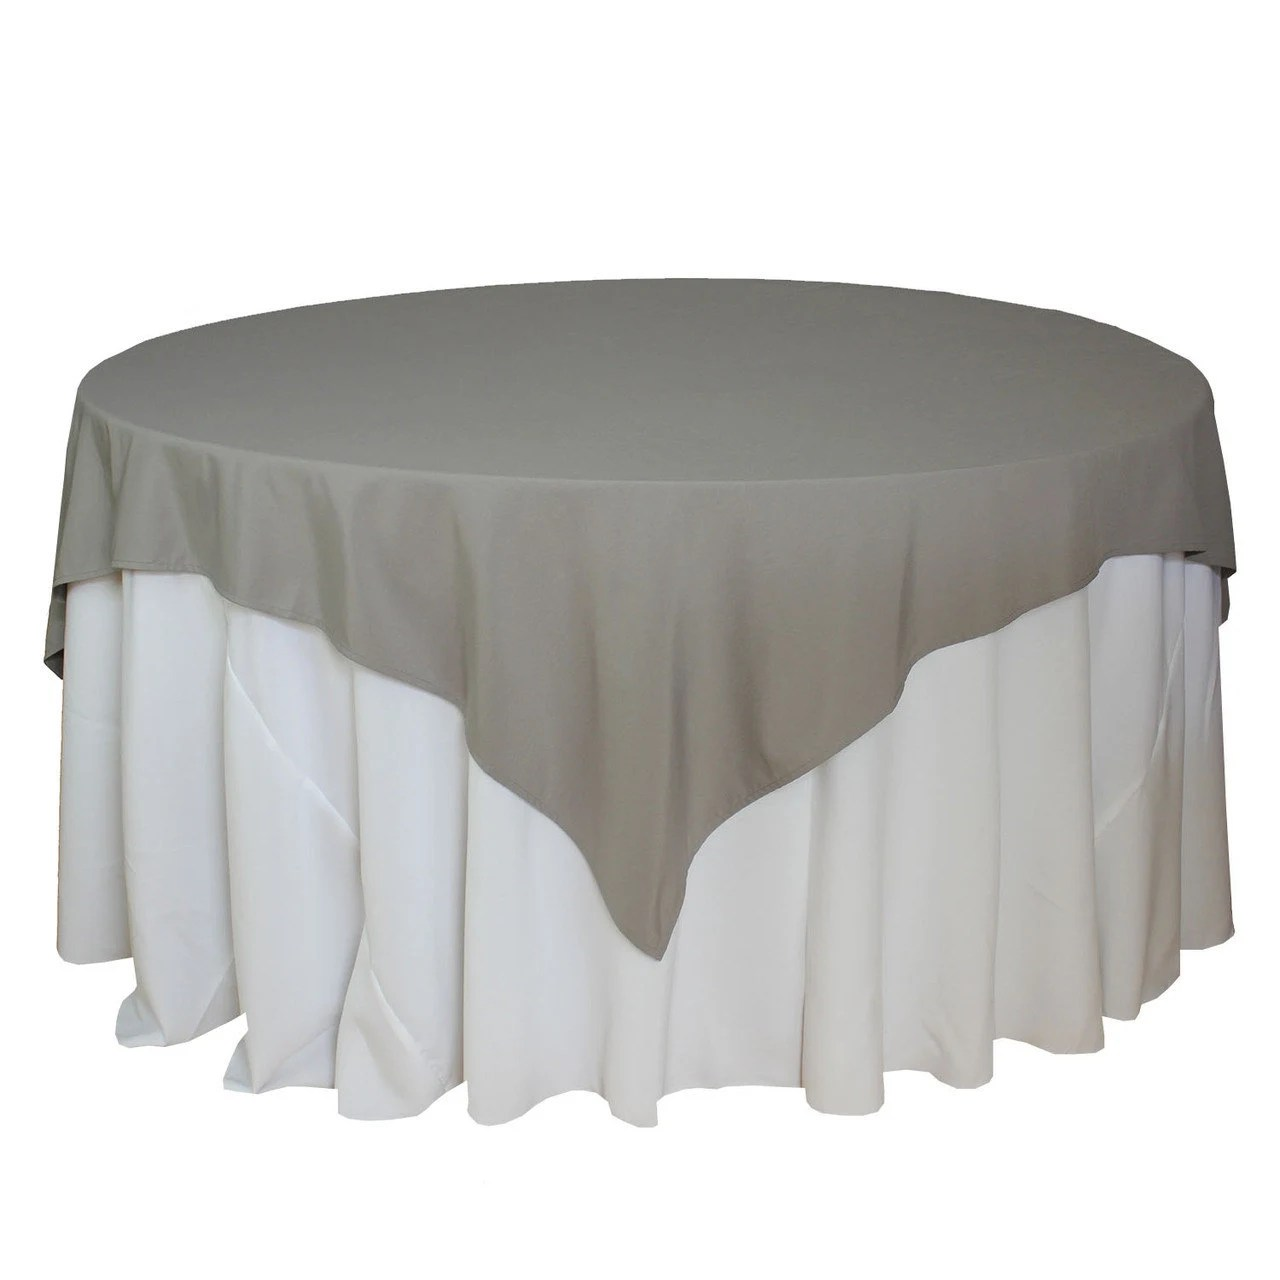 Square Tablecloth 72 X 72 Inches Gray Table Overlays Square Gray Tablecloths